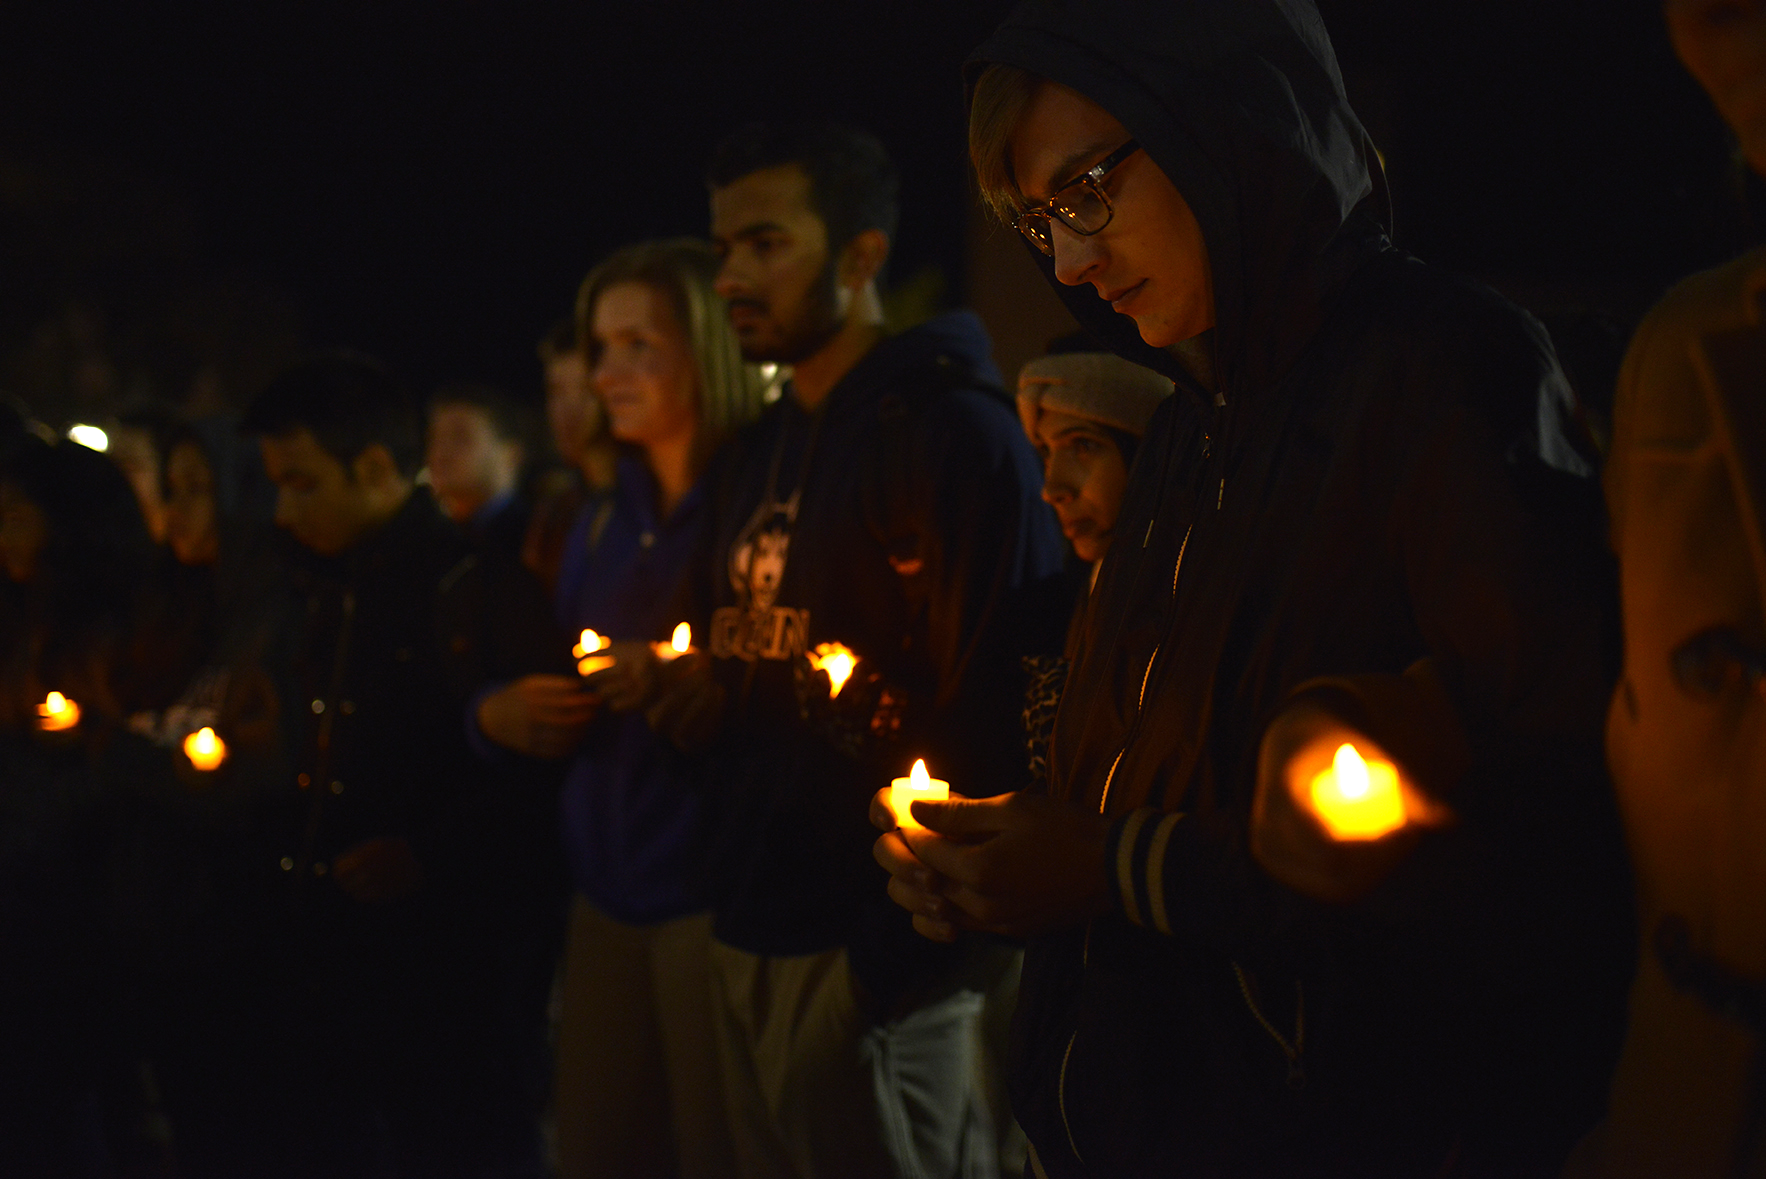 """Students hold candles as part of a vigil on Fairfield Way Wed., Nov. 18 to honor victims of Islamophobia. The vigil was held by Asian American Cultural Center (AsAAC) as part of a series named """"Salaam."""" (Jason Jiang/Daily Campus)"""